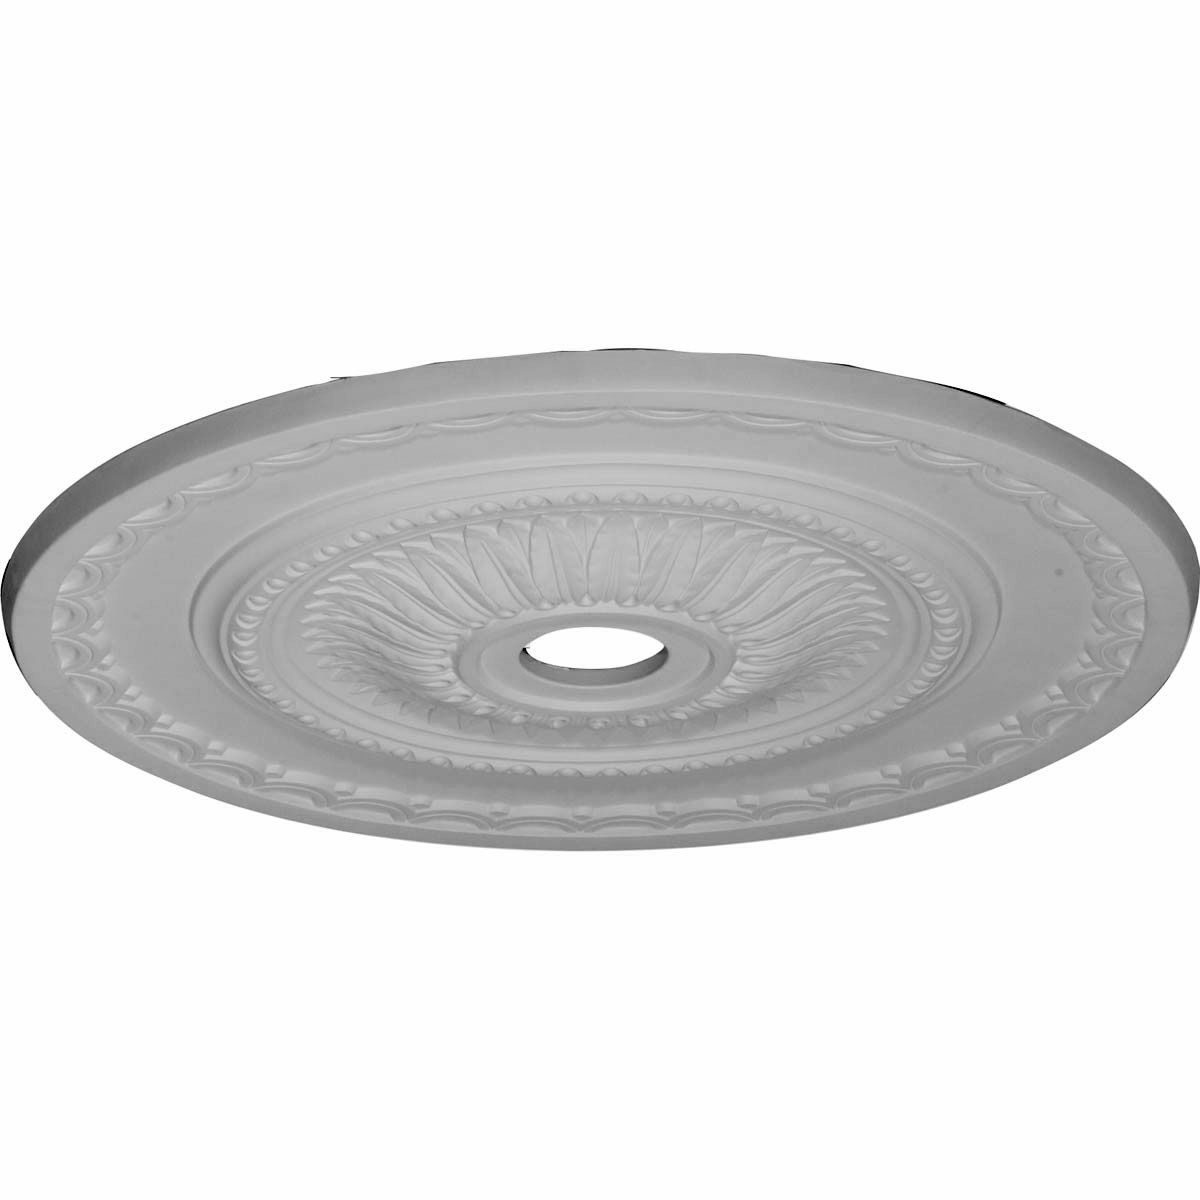 29-1-2-OD-x-3-5-8-ID-x-1-5-8-P-Sunflower-Ceiling-Medallion--Fits-Canopies-up-to-5-5-8--